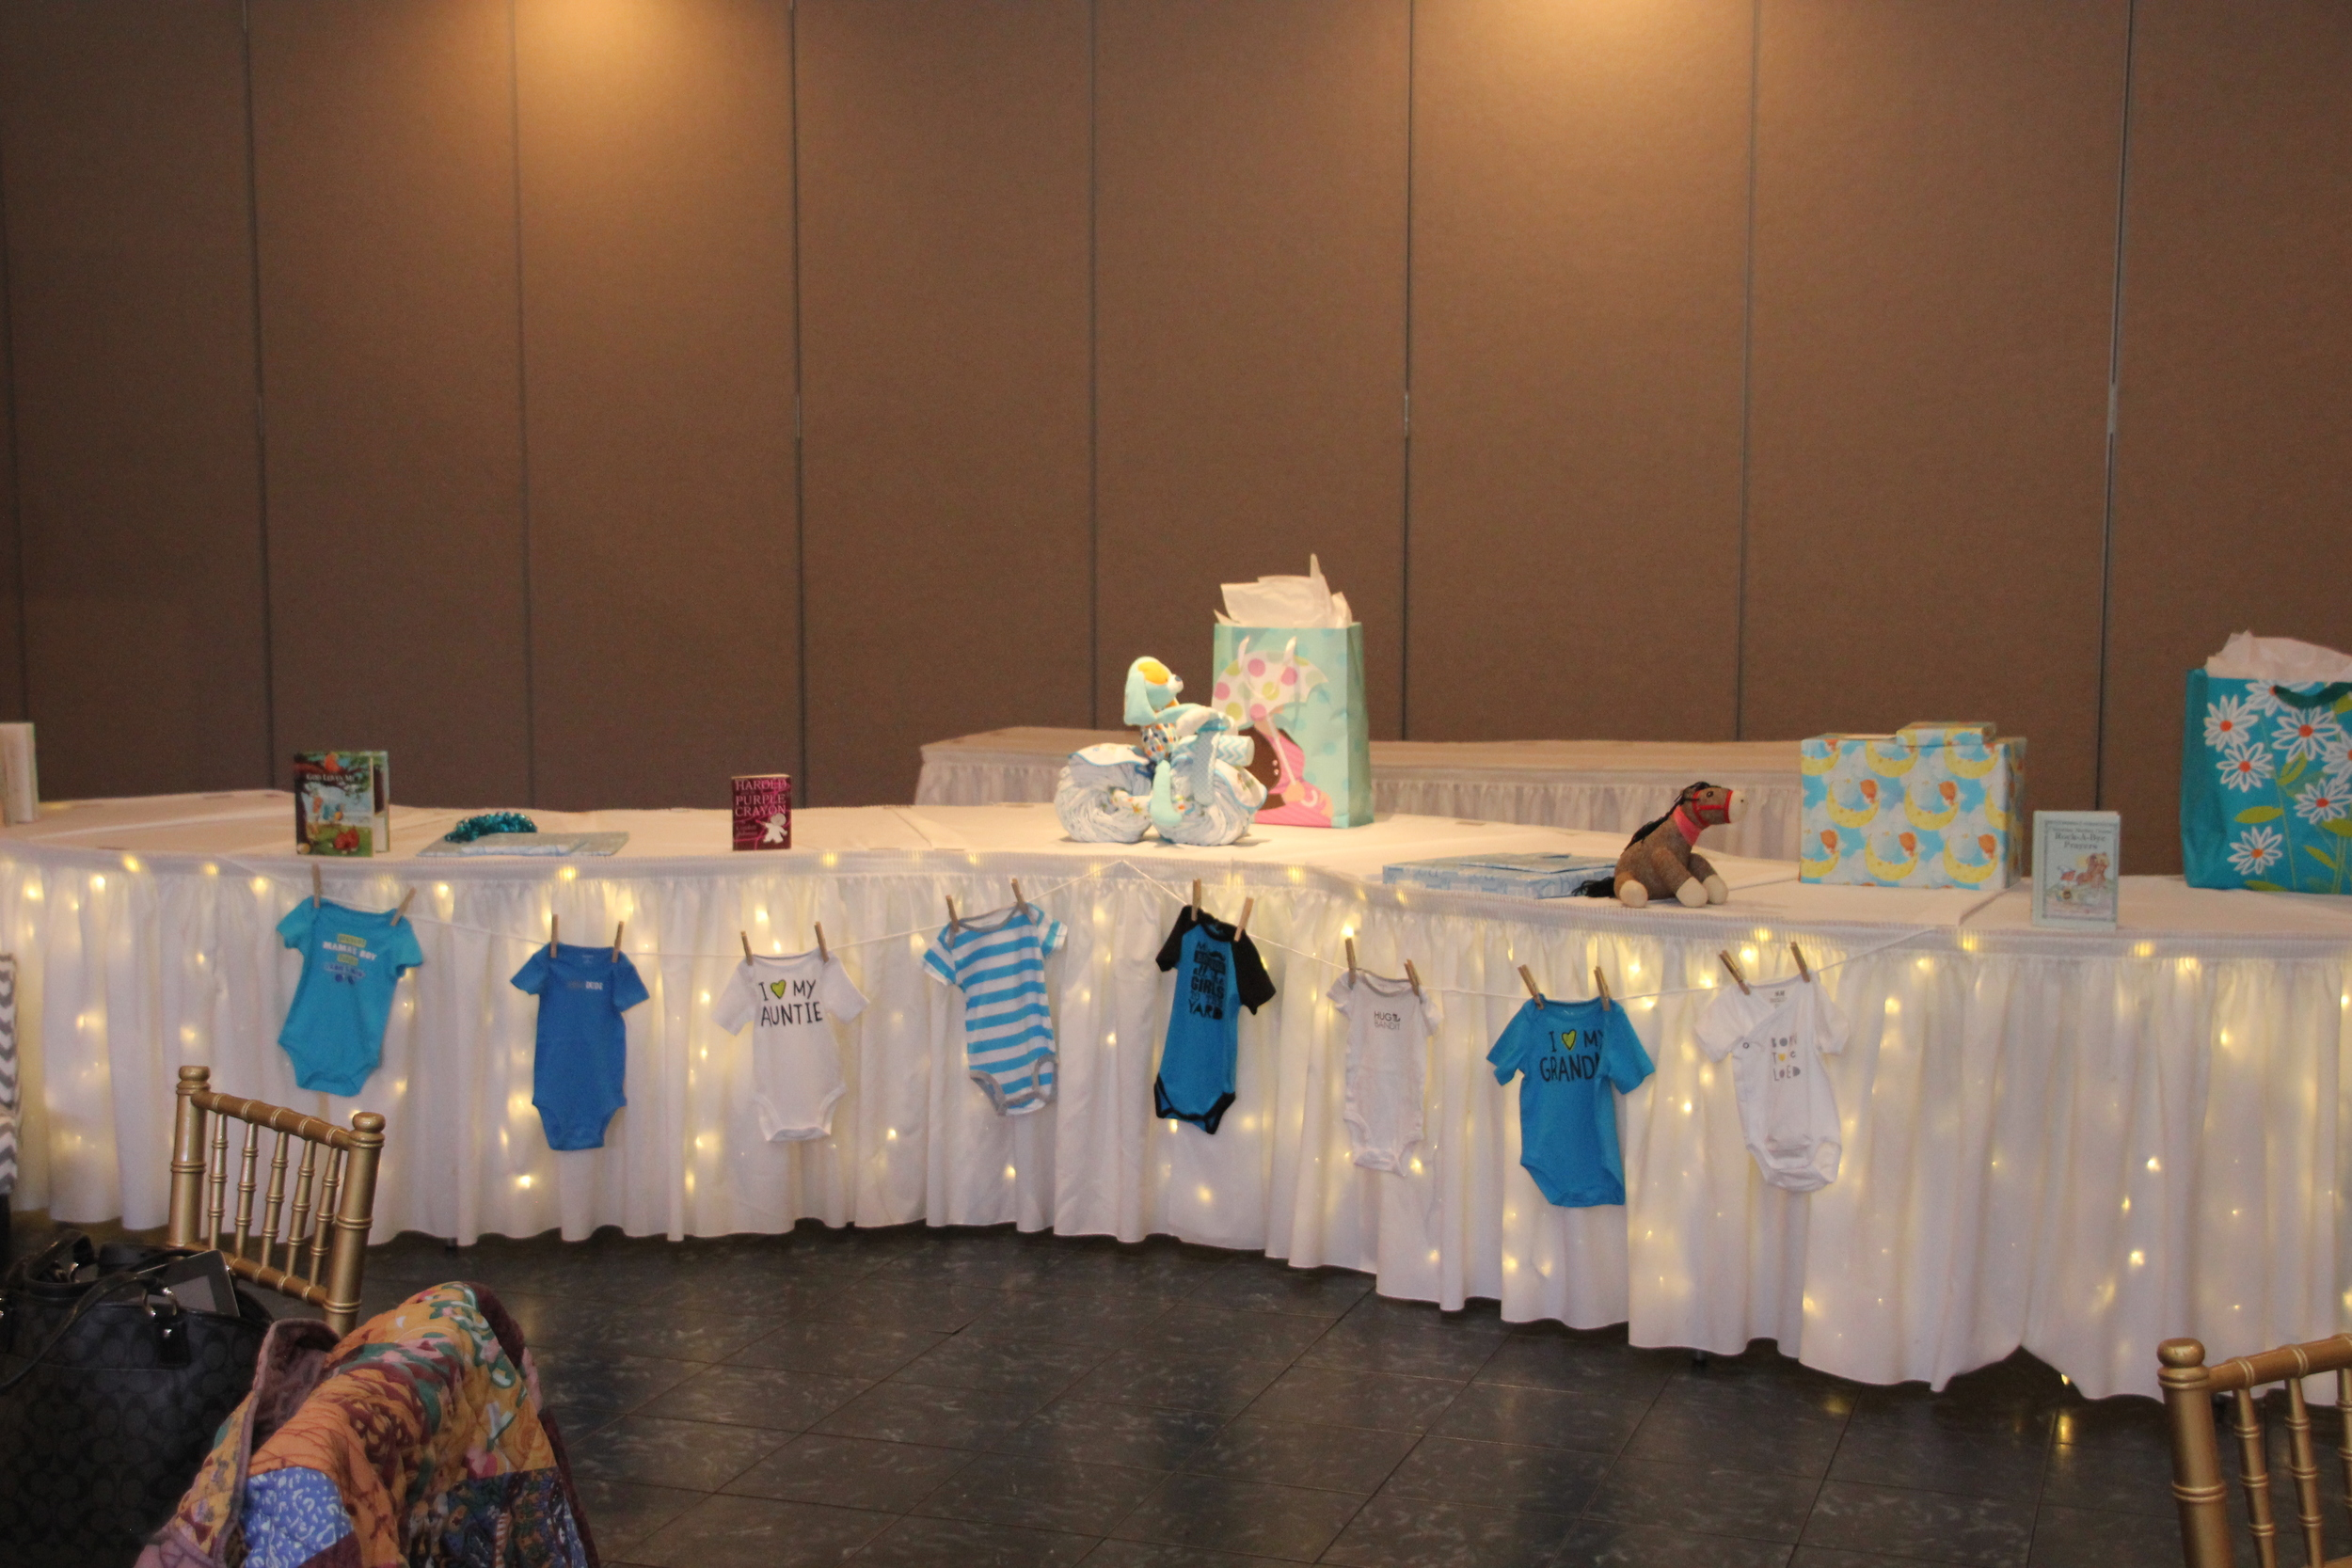 Our serpentine gift table is perfect for some little onesies on the clothesline.